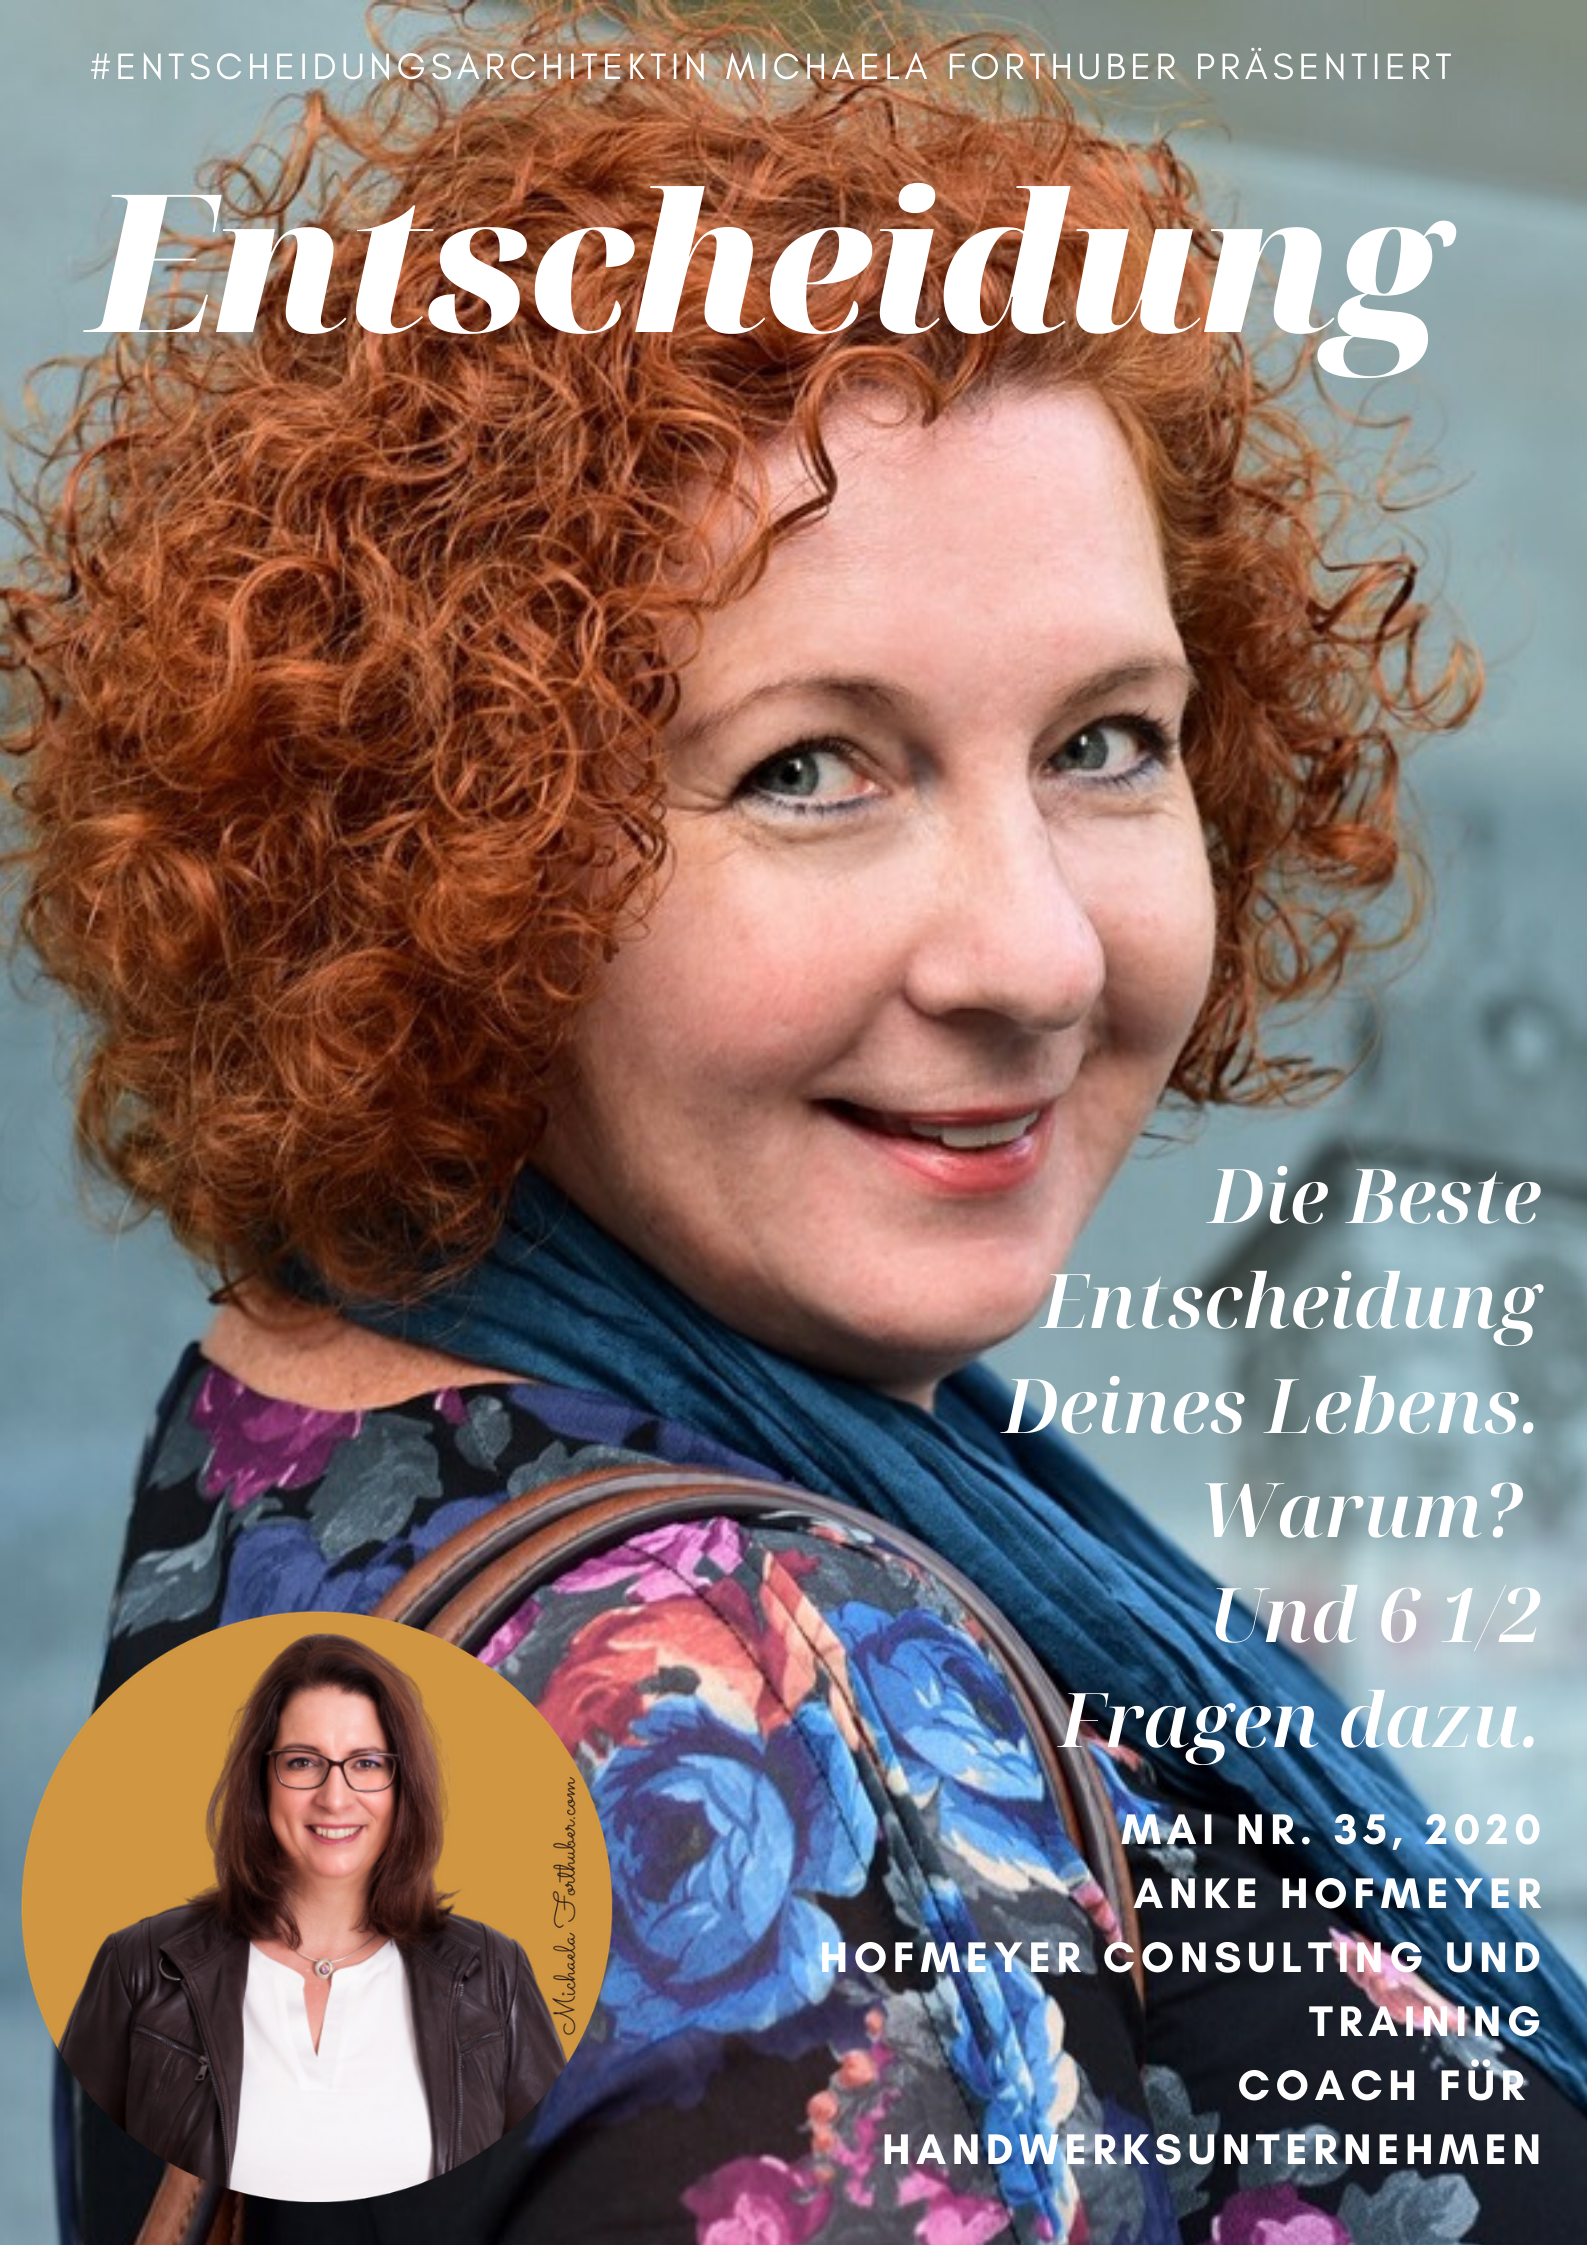 Blog Interview Entscheiden Cover Michaela Forthuber Interview Anke Hofmeyer #Entscheidungsarchitektin